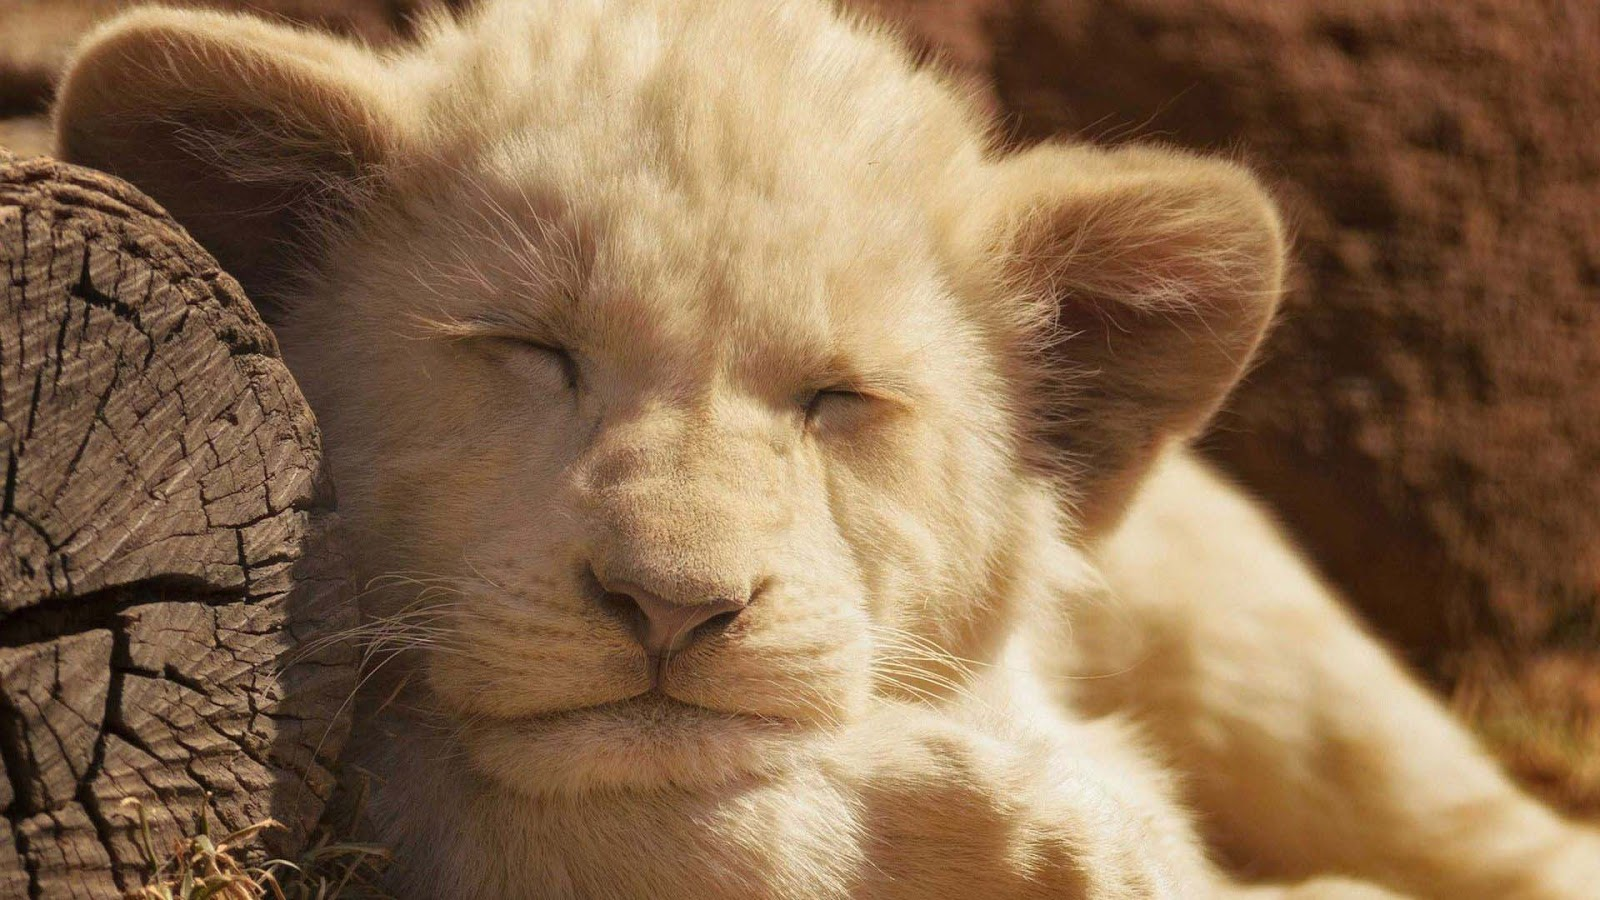 Good Wallpaper Home Screen Lion - sleeping-lion-cub-animal-images  Best Photo Reference_36264.jpg